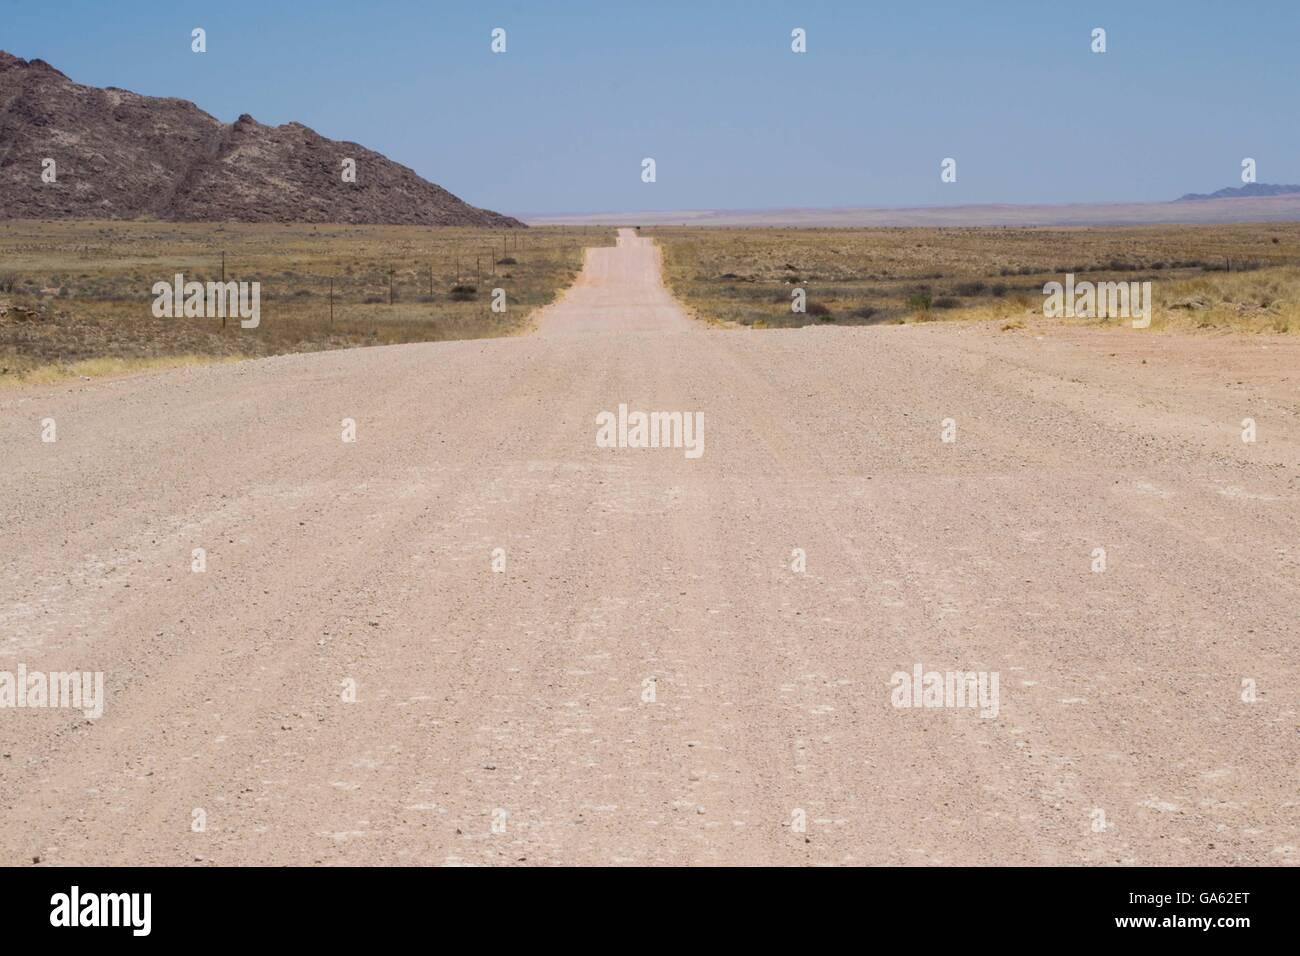 Dirt road into the desert of Namibia - Stock Image